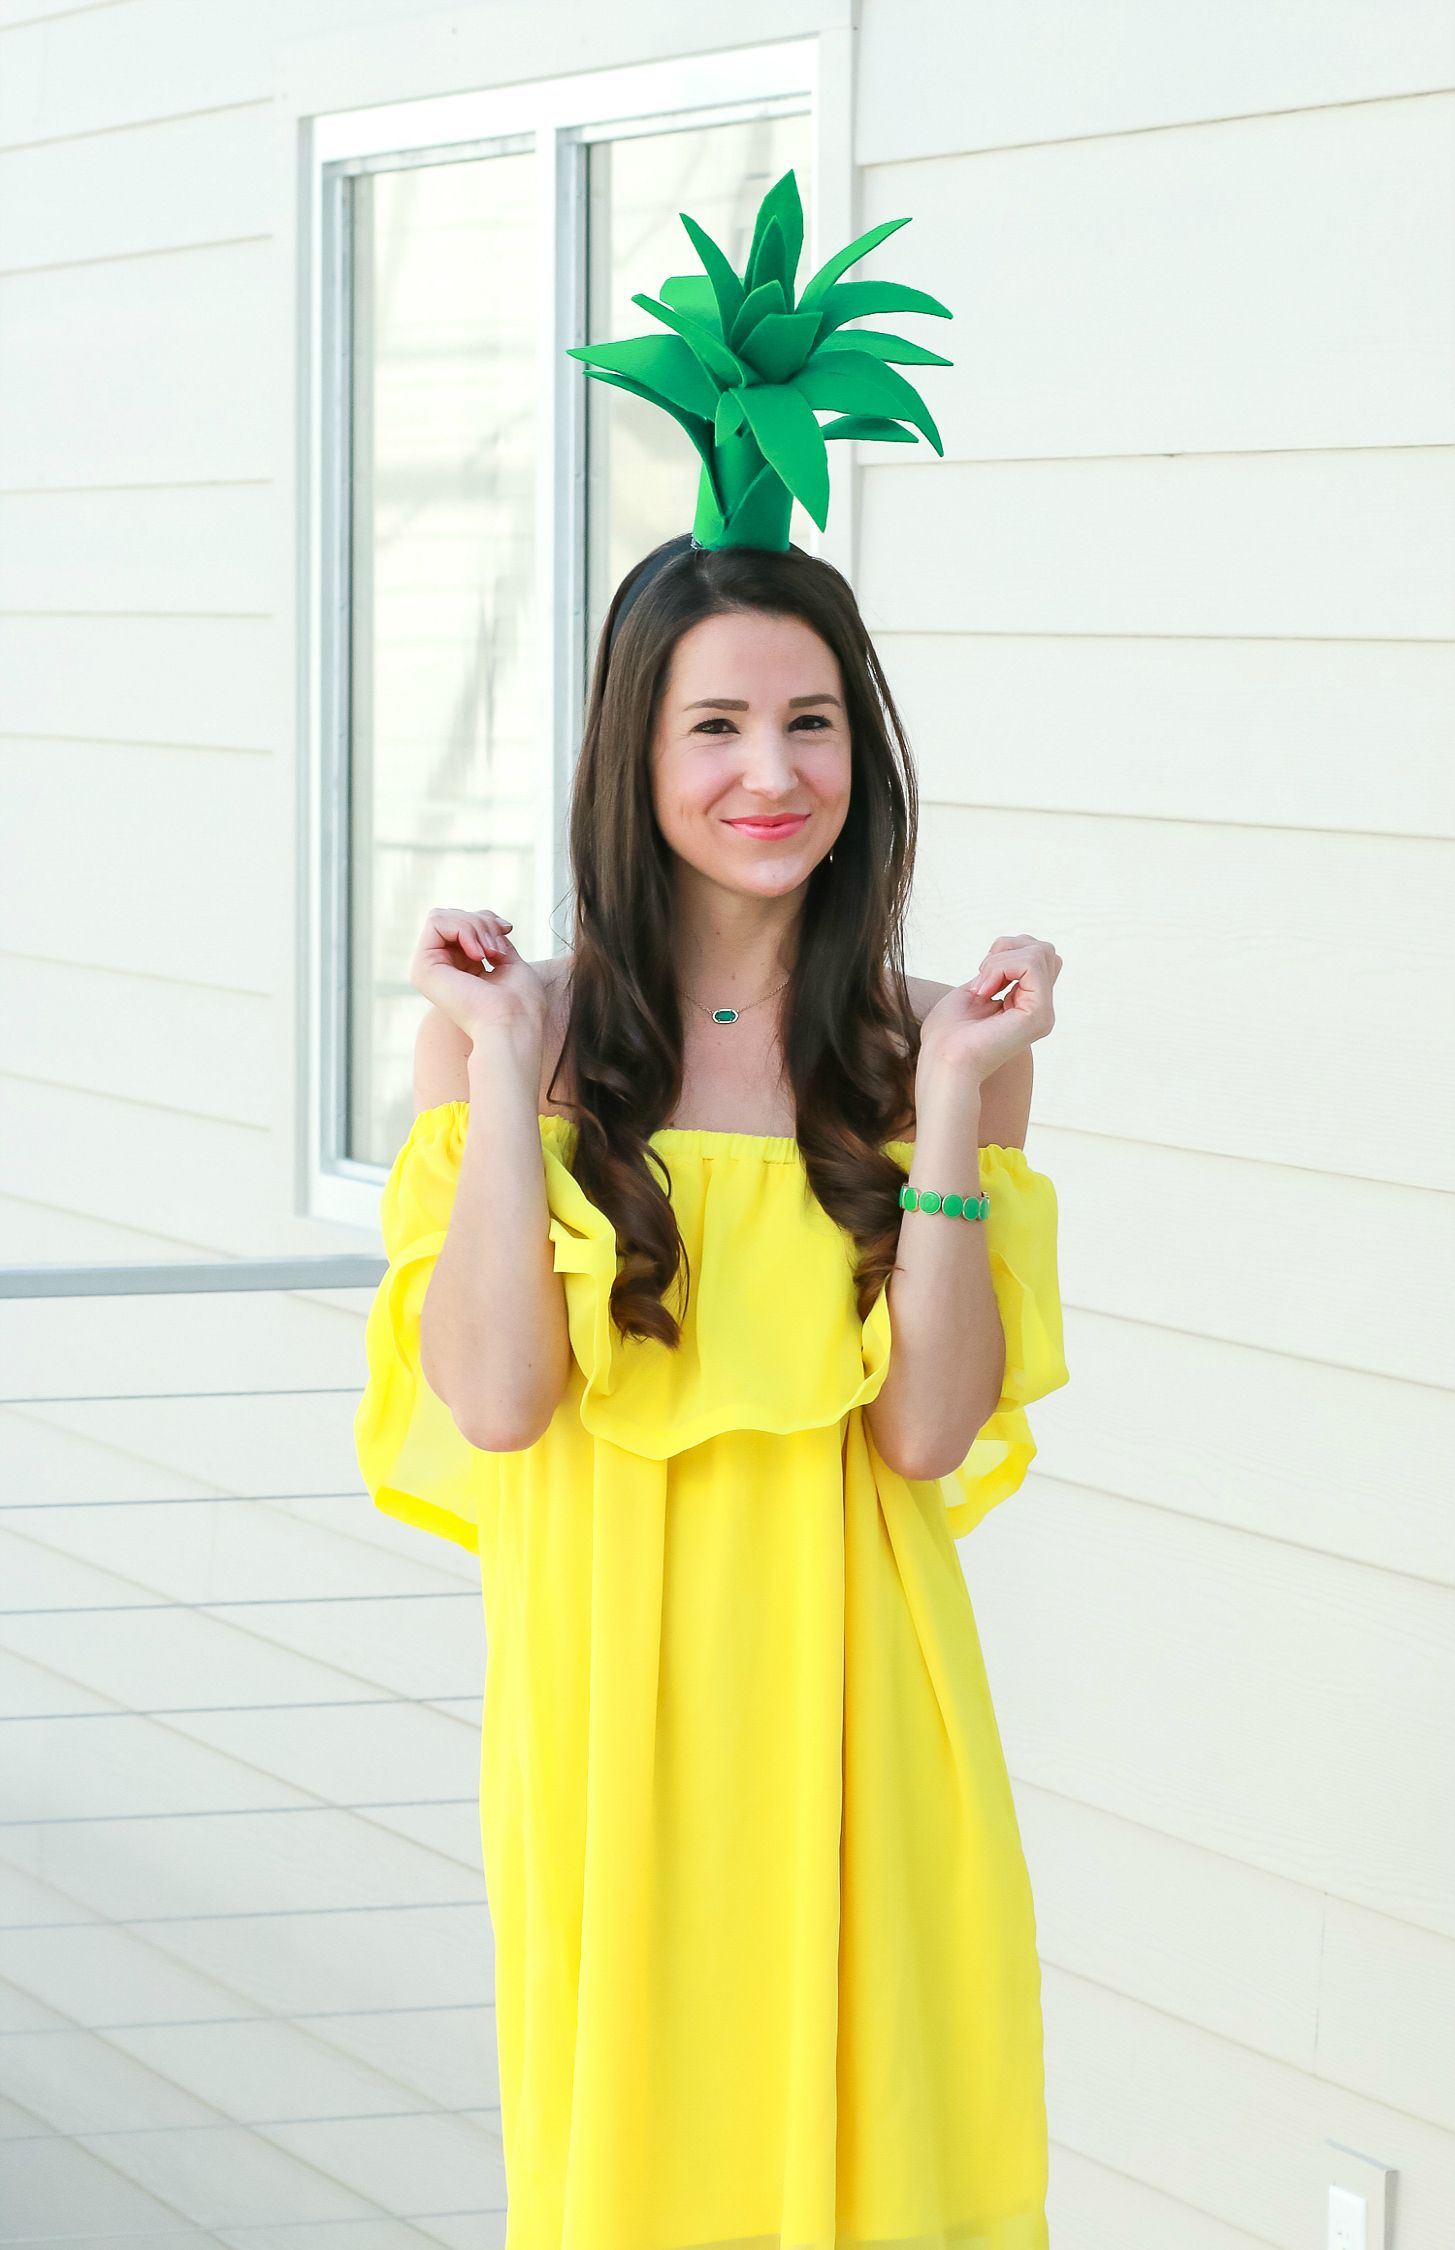 DIY Pineapple Costume That Costs Less Than 3 to Make